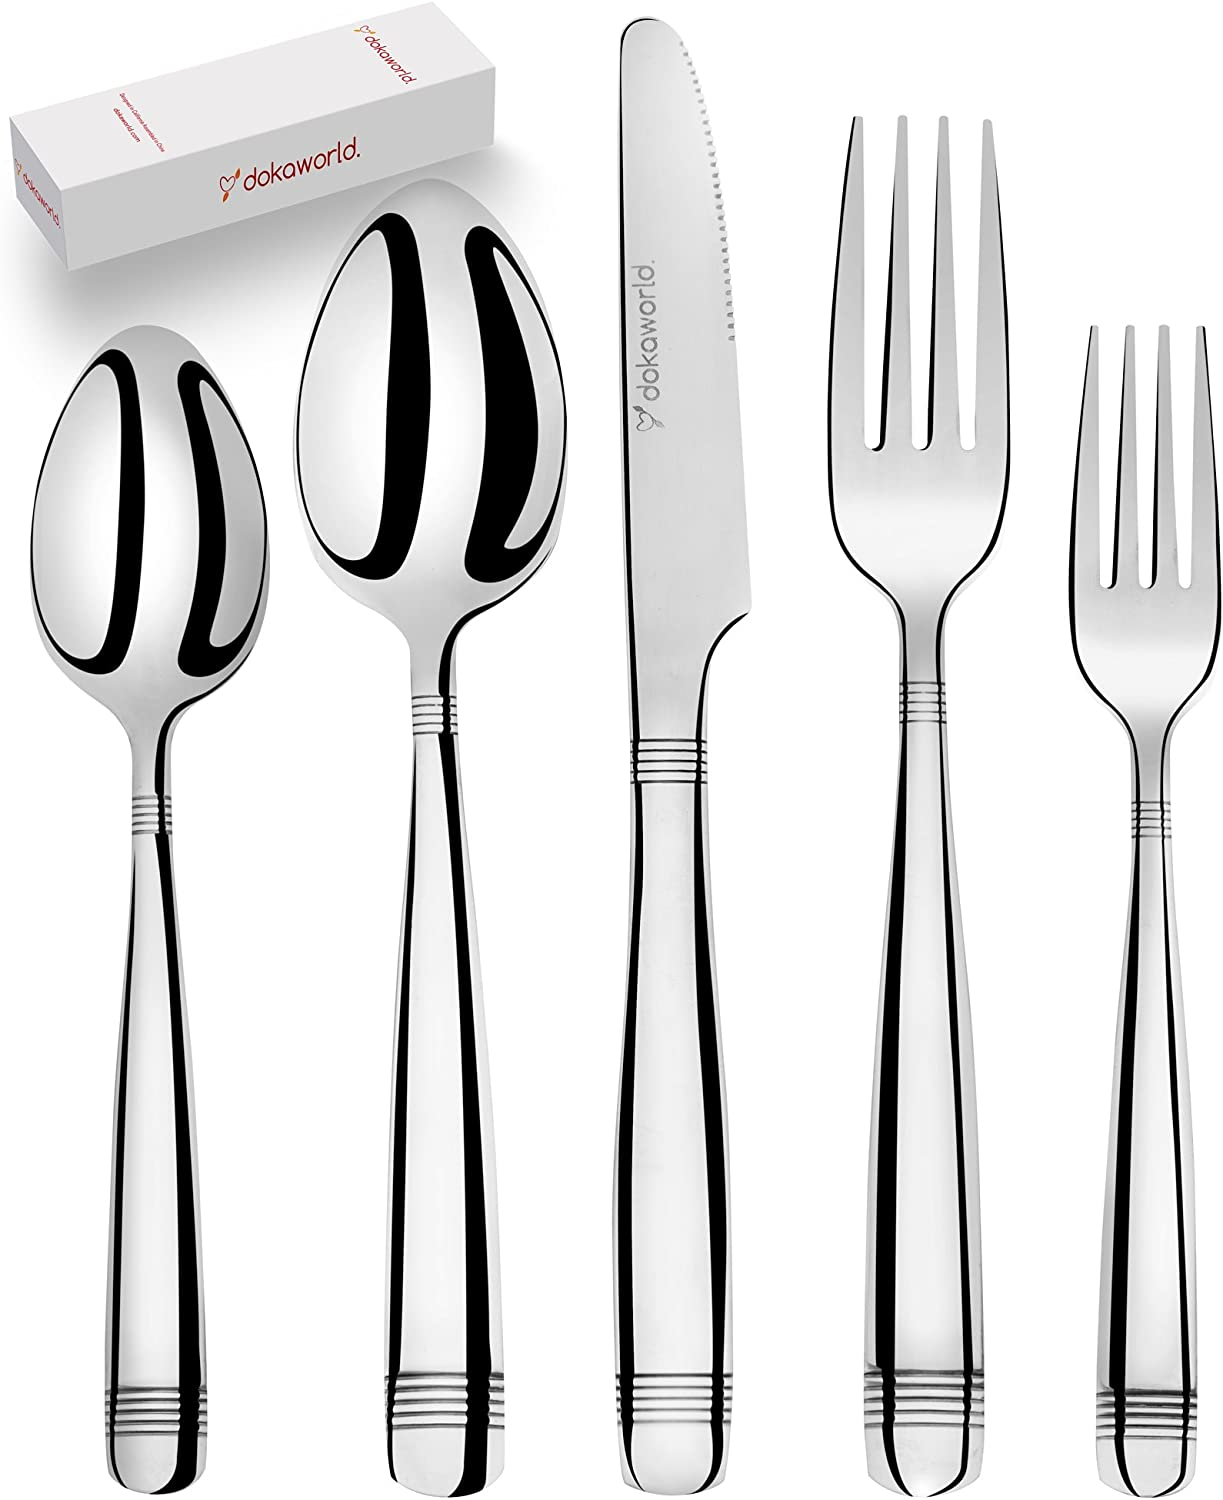 Silverware Set 18/10 Stainless Steel - Elegant Flatware Set of 40 Pieces - Eating Utensils for 8 People - Modern Cutlery Kit of Dinner Forks - Spoons Knives Dessert Forks and Spoons (A - Victoria)